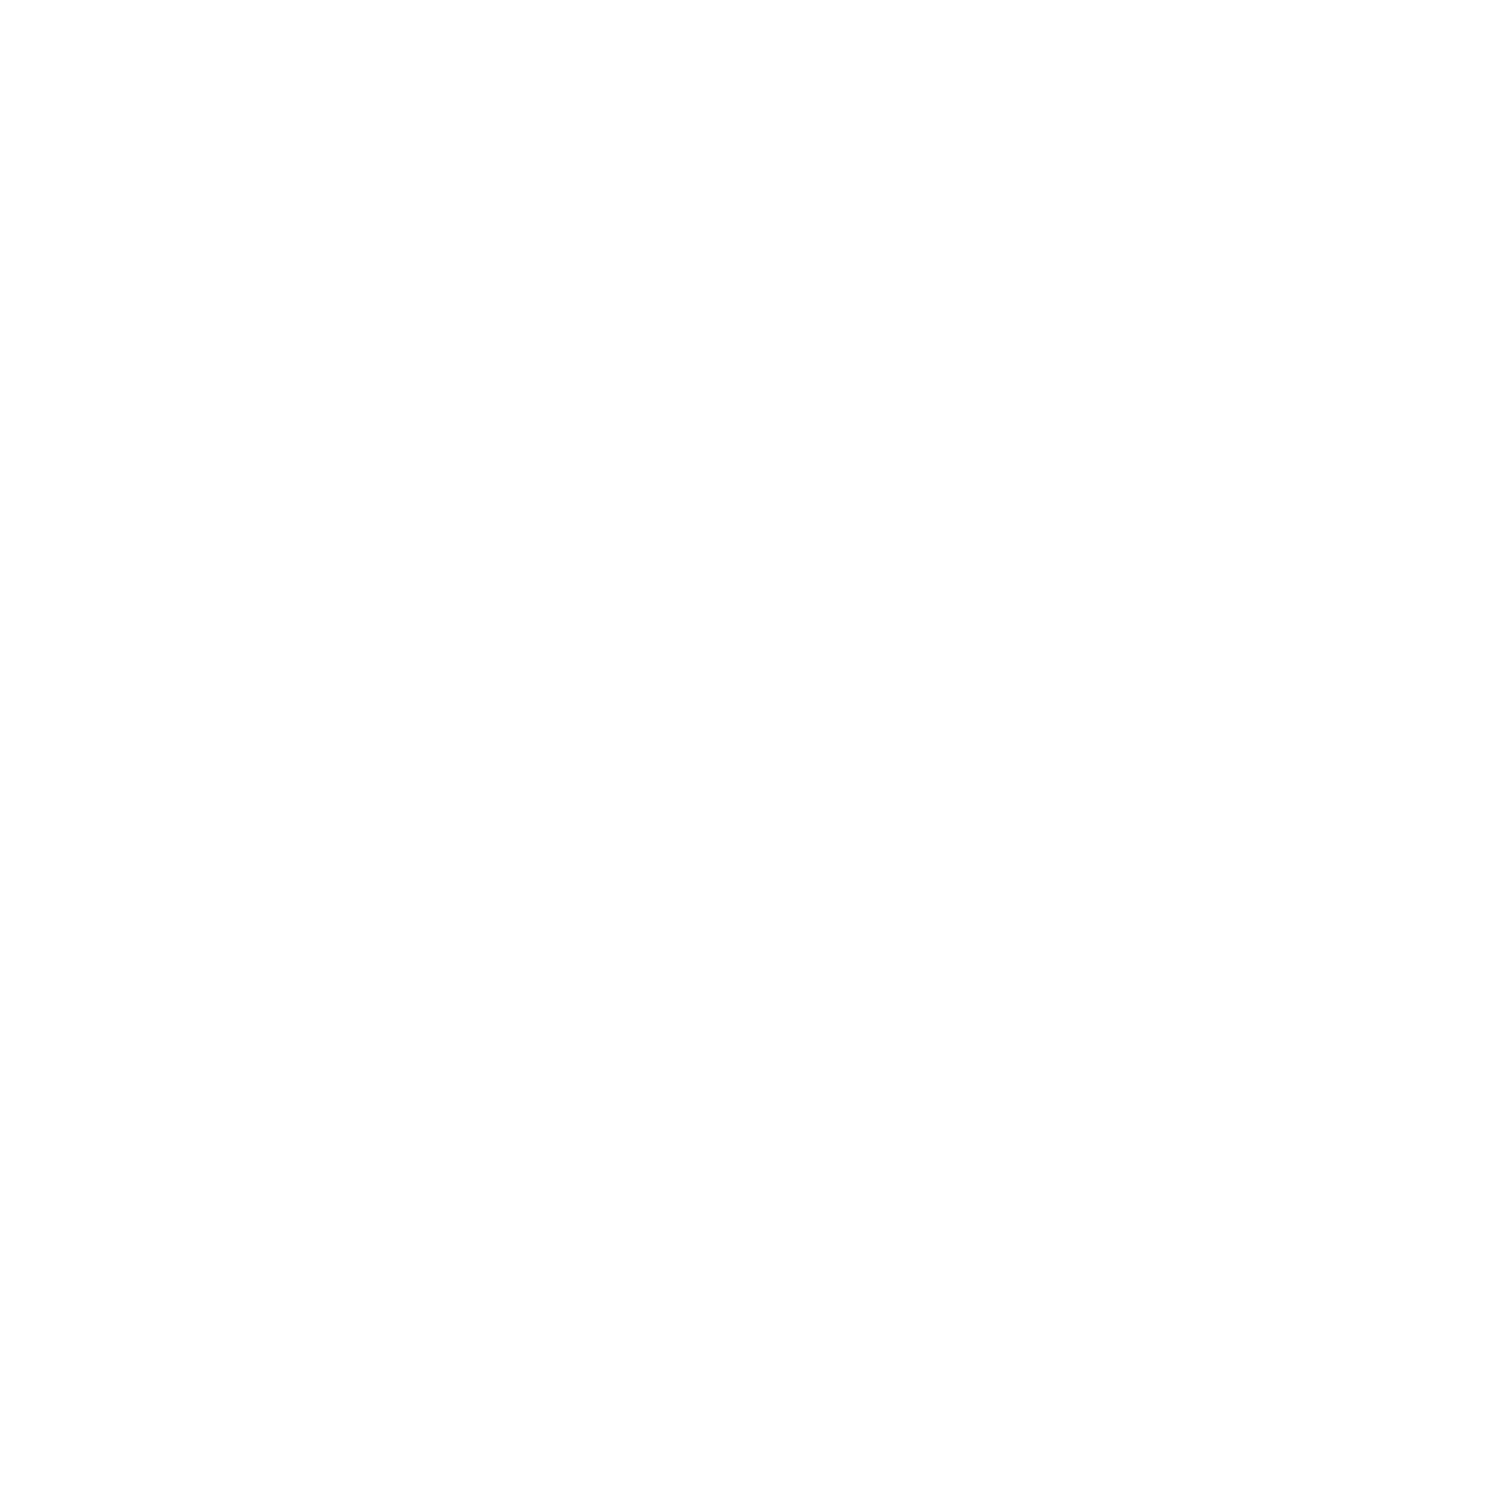 Ron Ramos New York